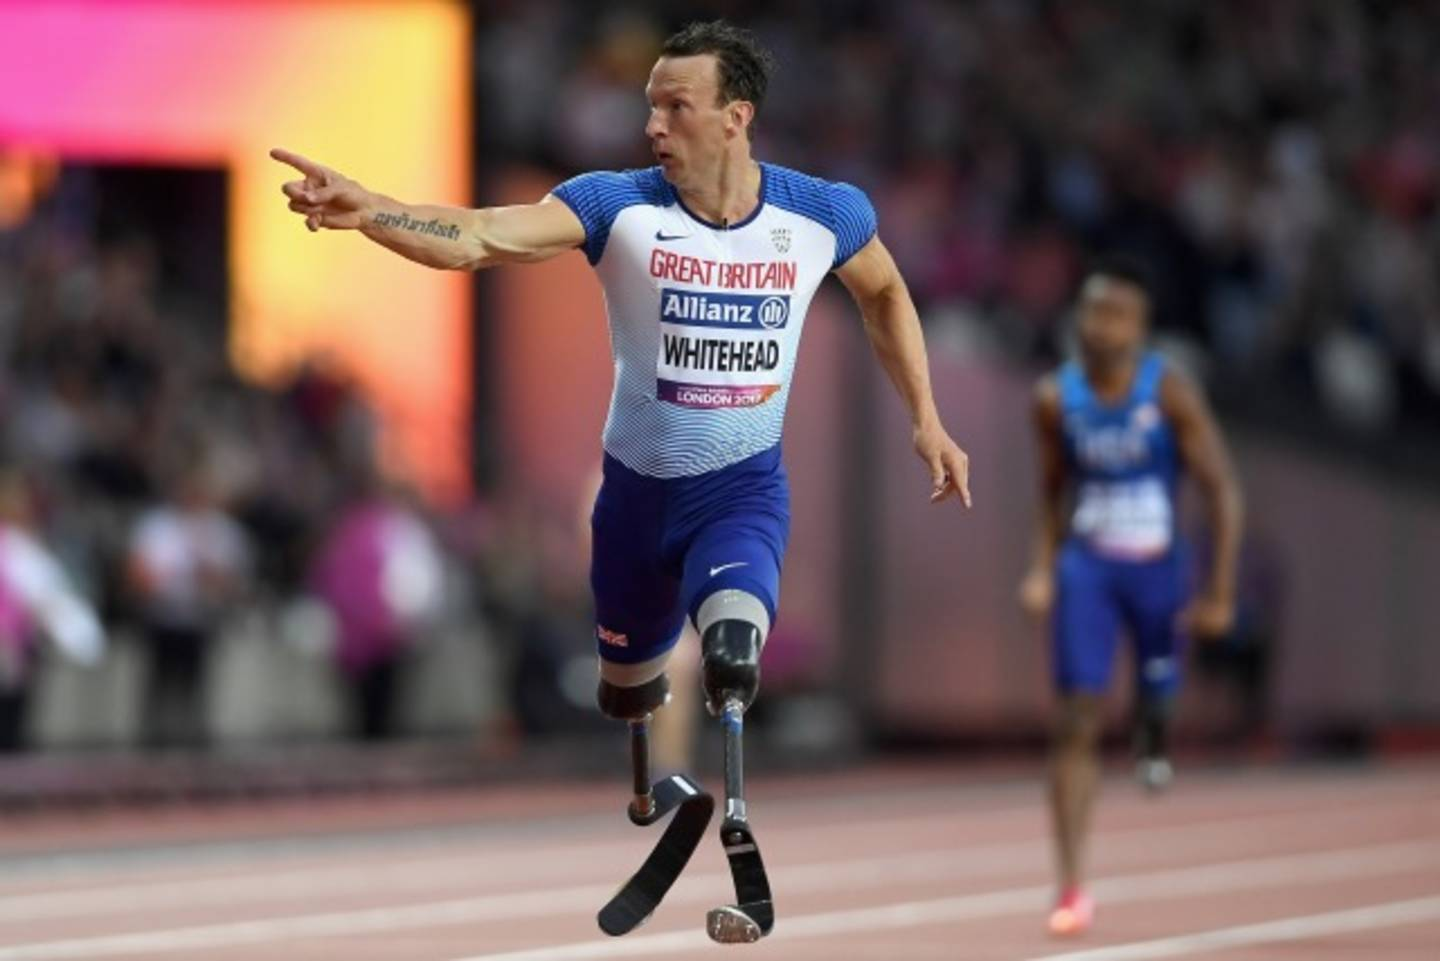 Richard Whitehead running on athletics track in World Para Championships 200m final